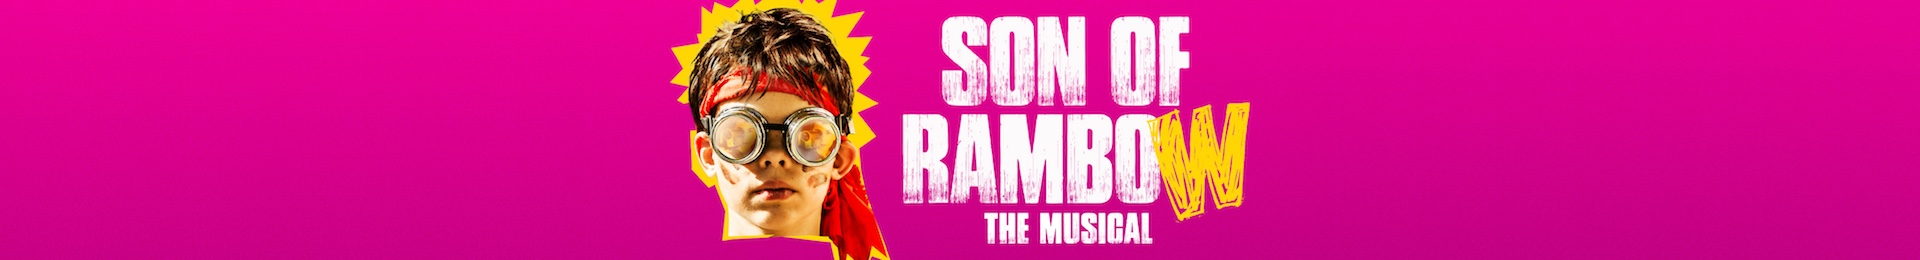 Son of Rambow banner image